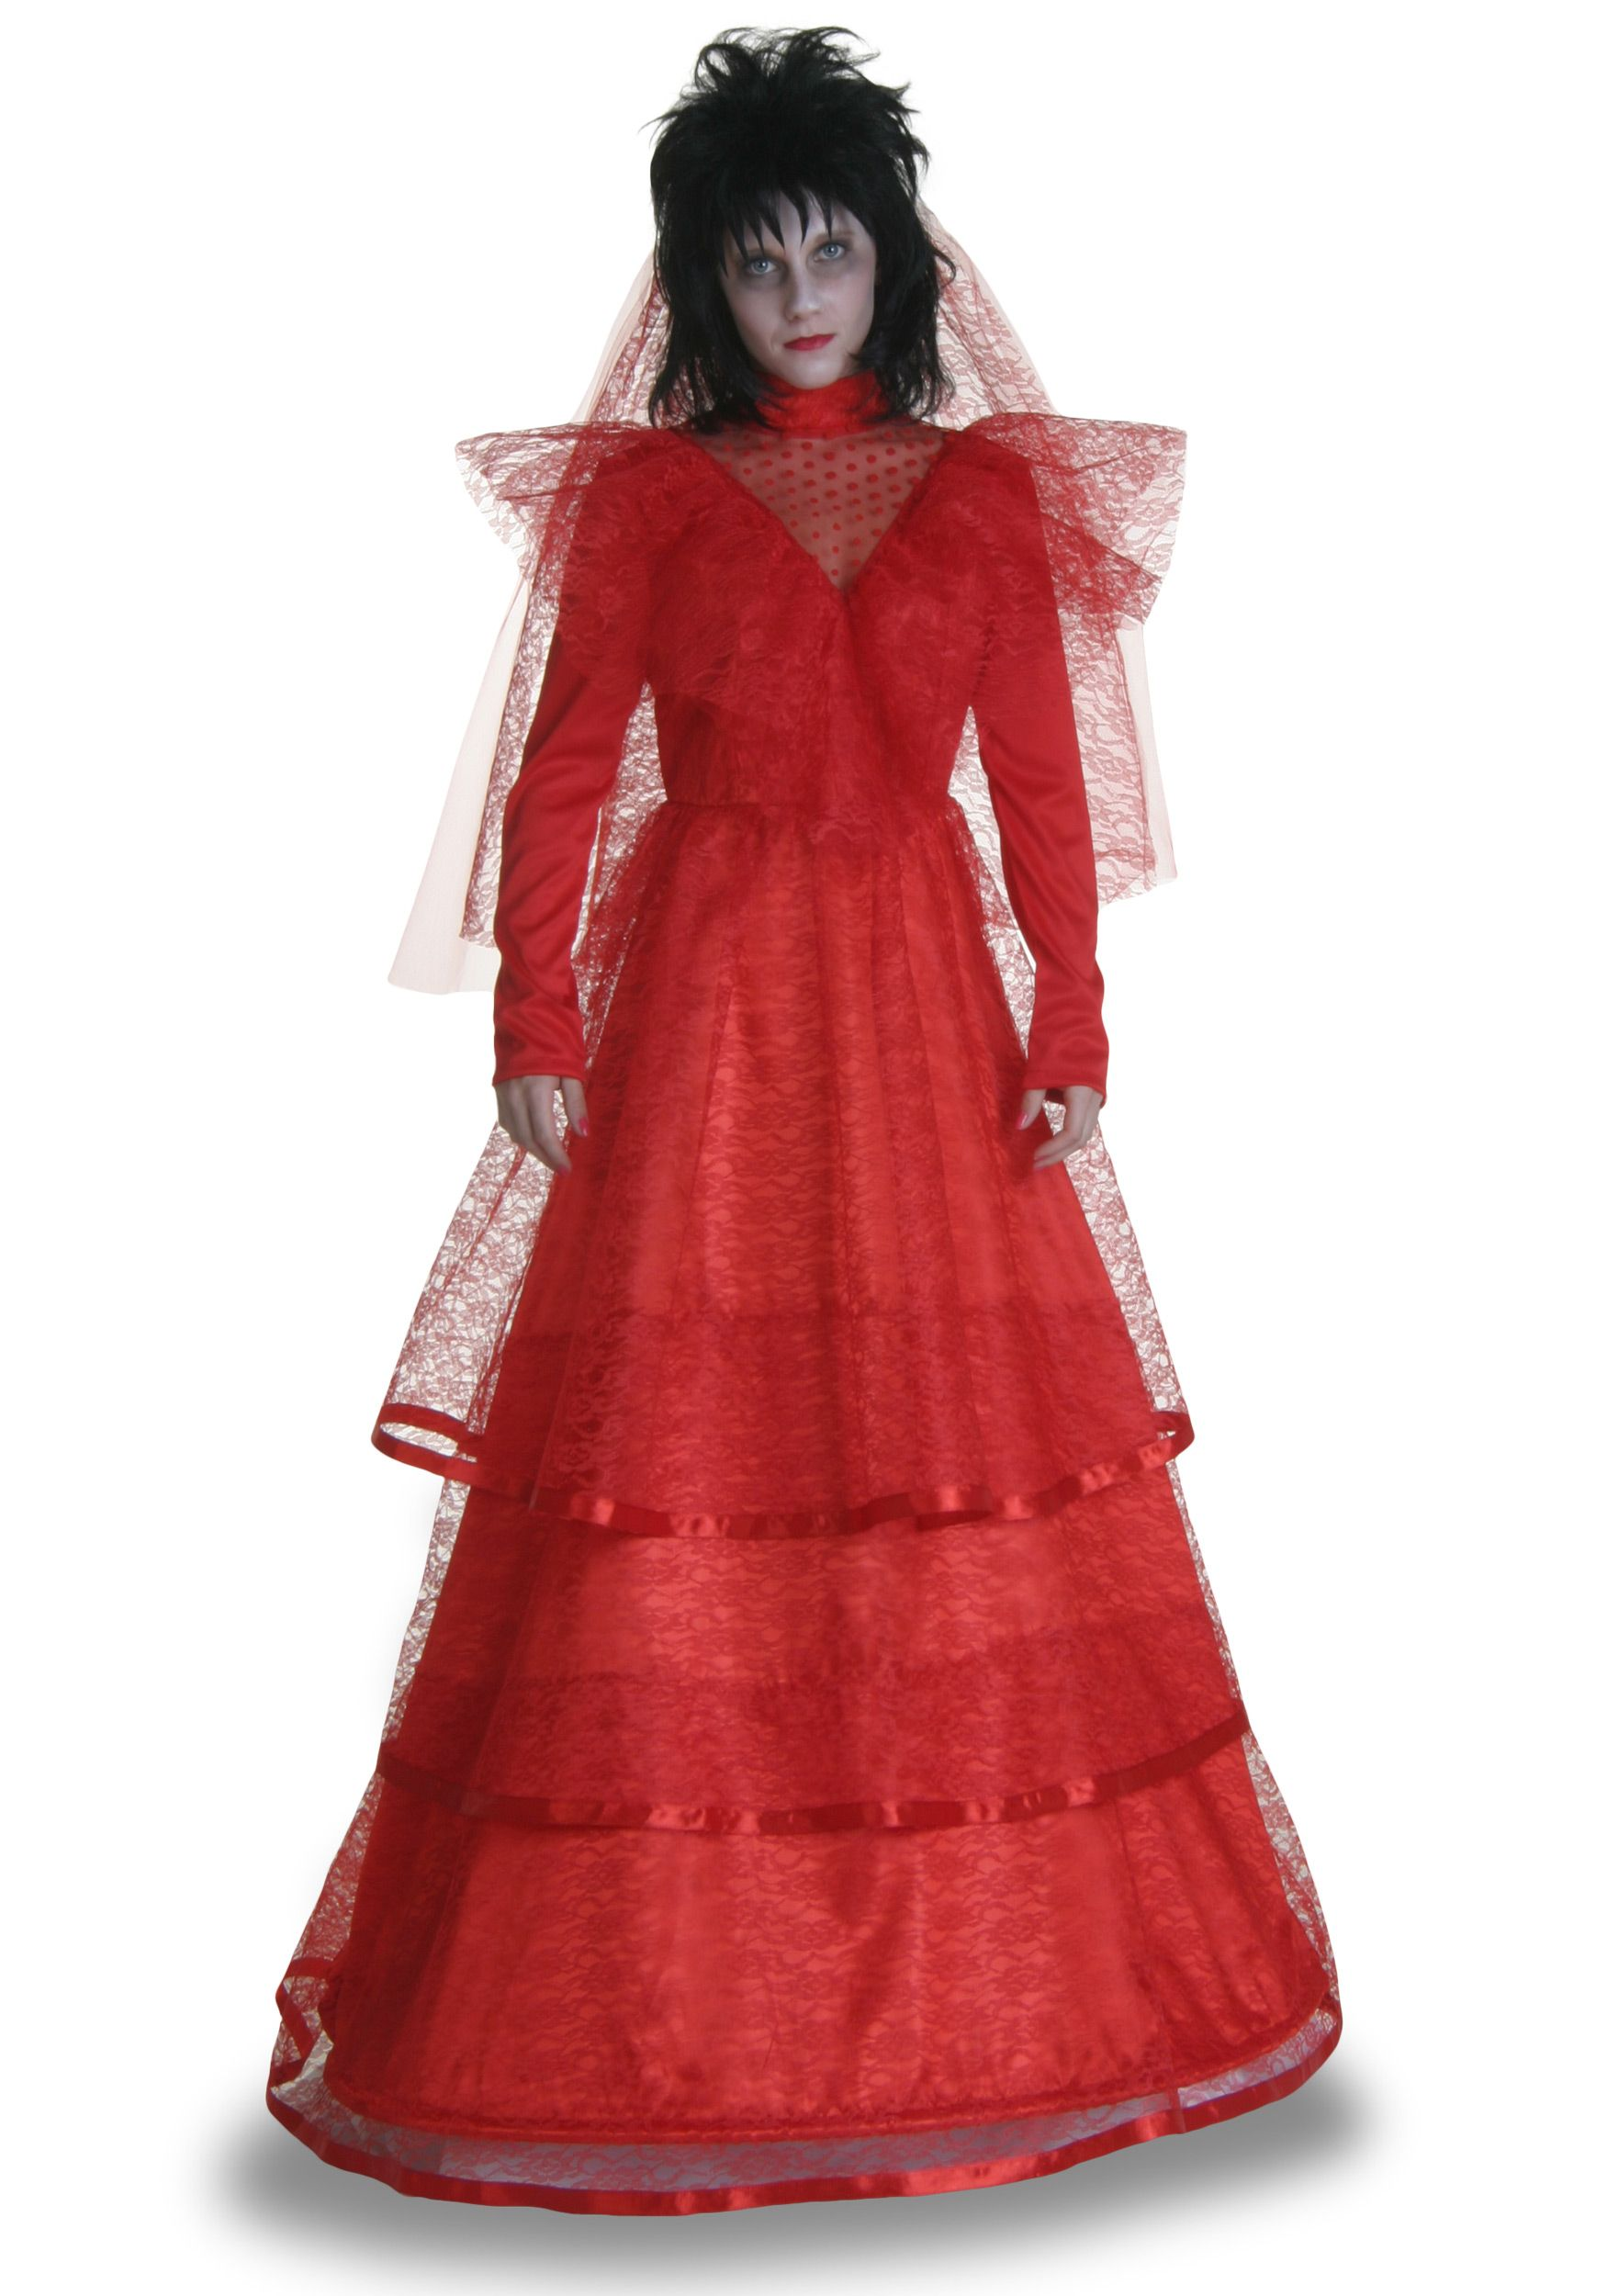 Lydiaus wedding dress from beetlejuice косплей pinterest